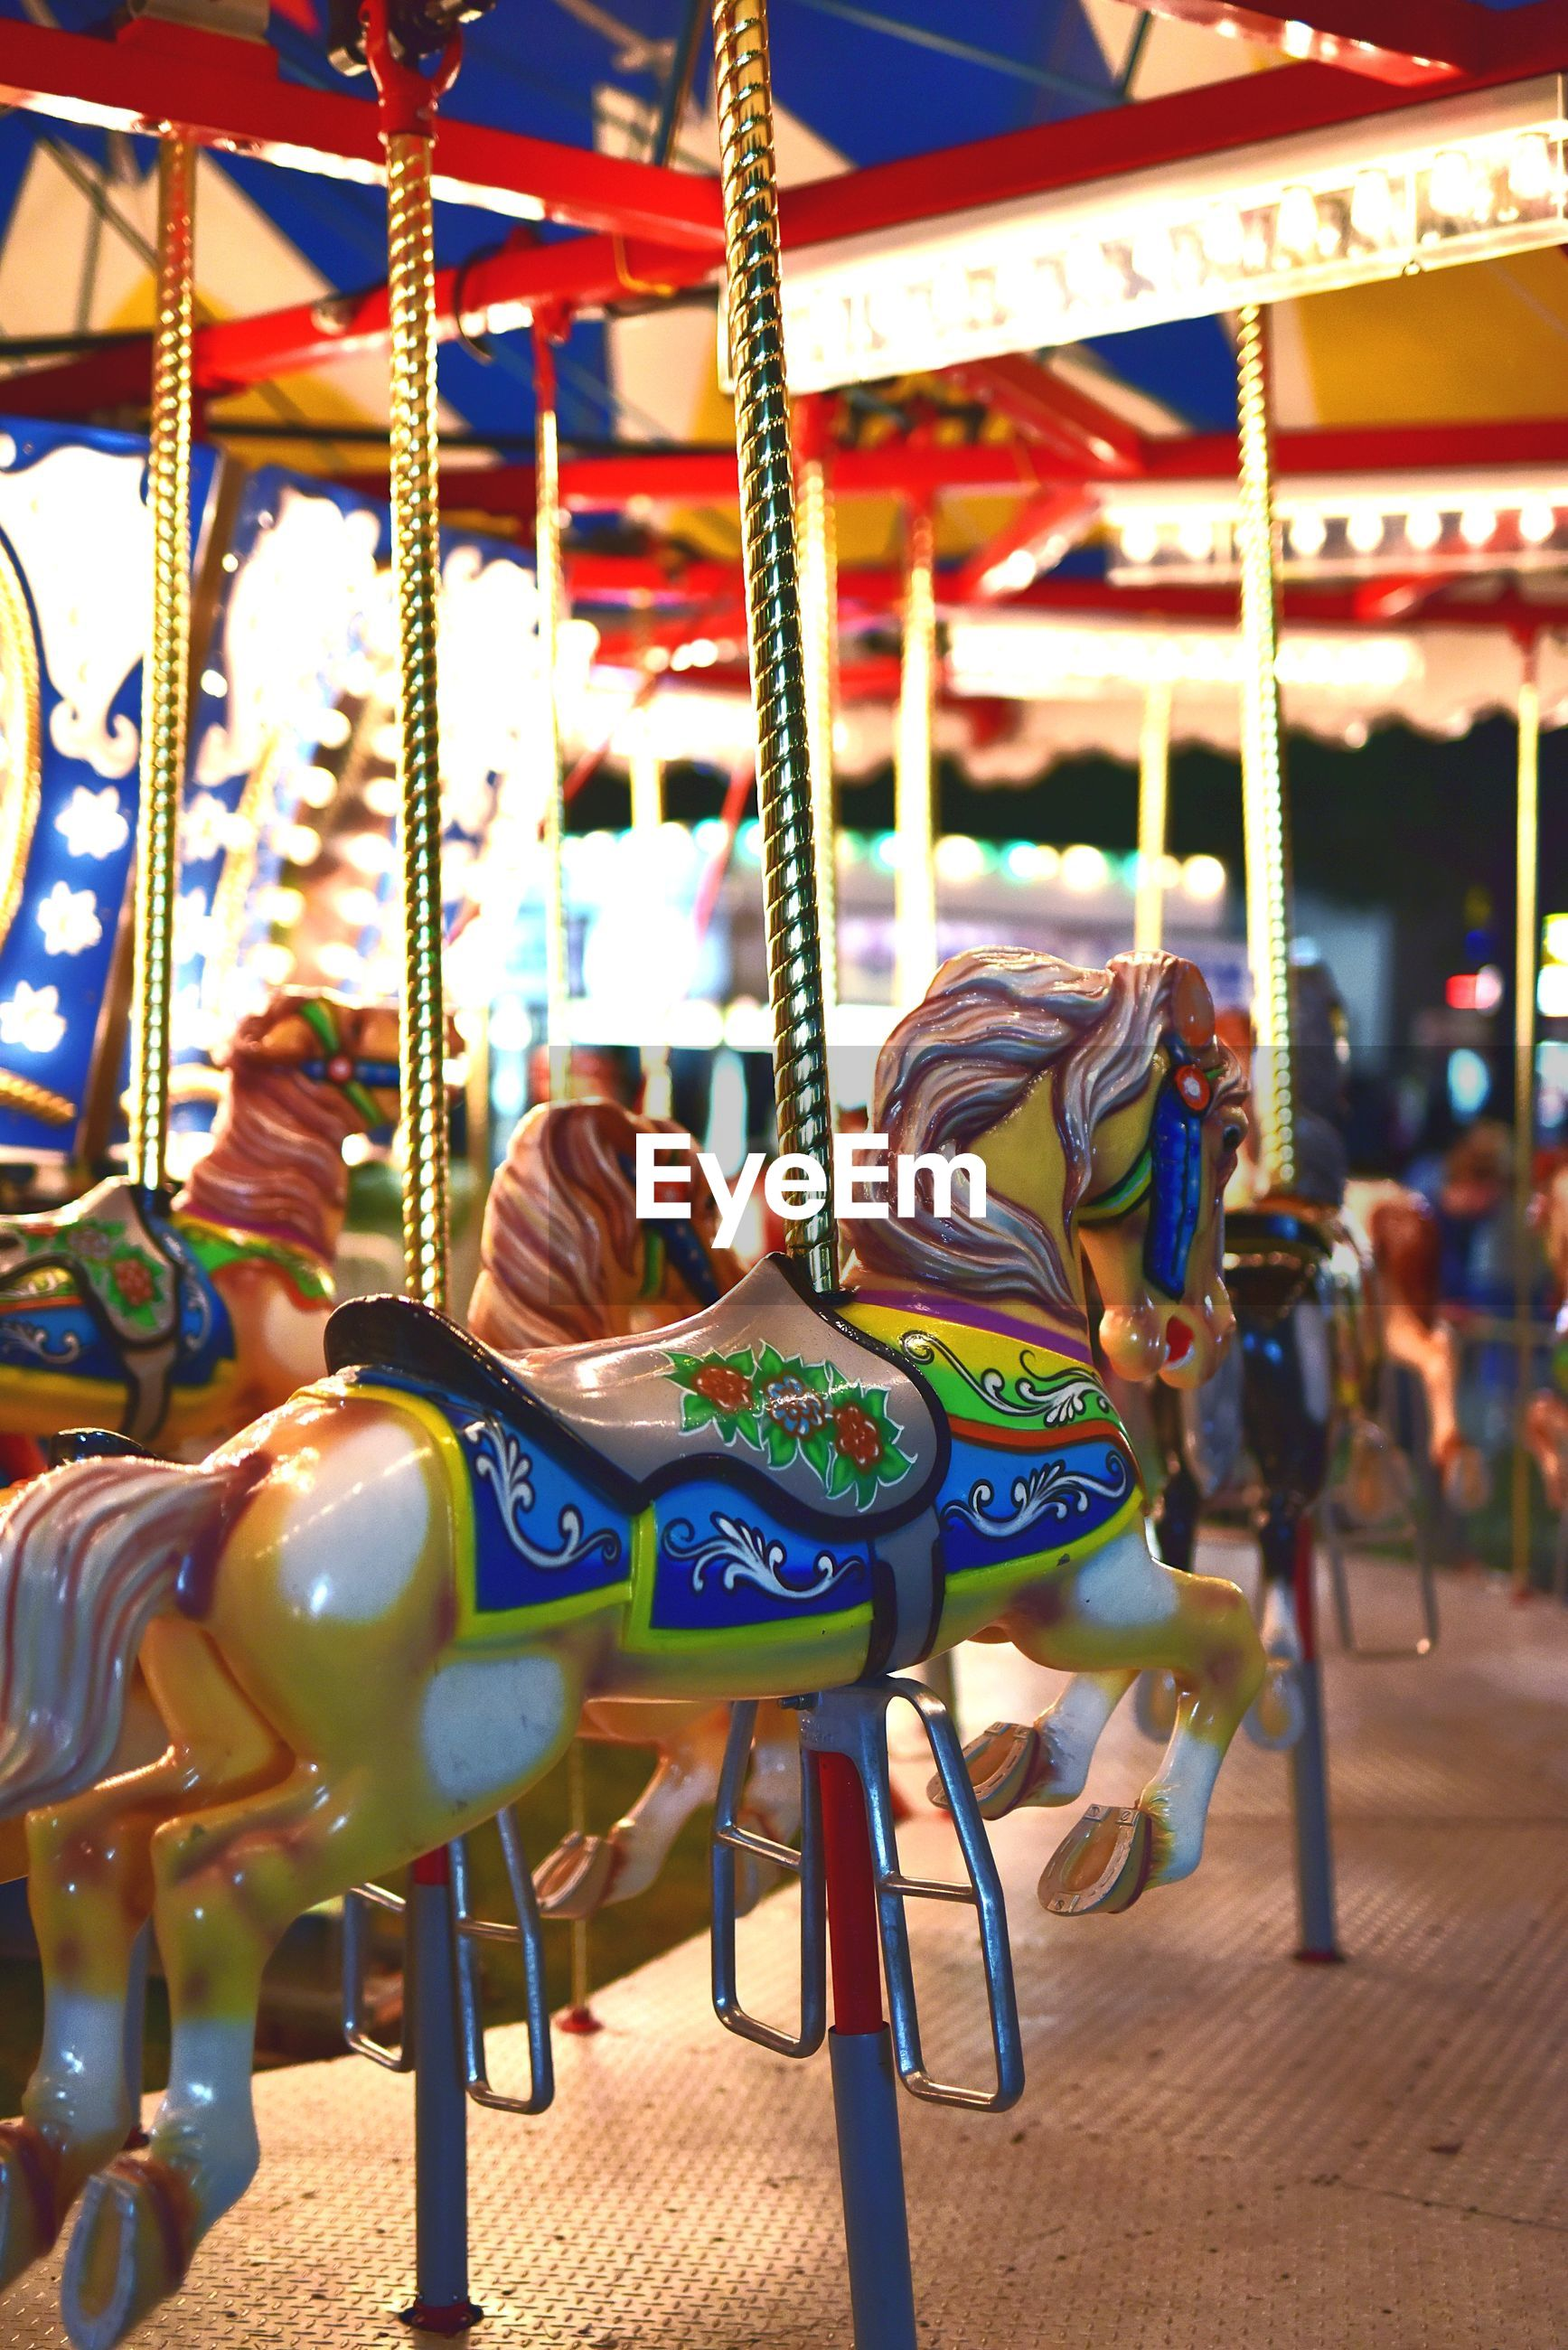 View of carousel at amusement park